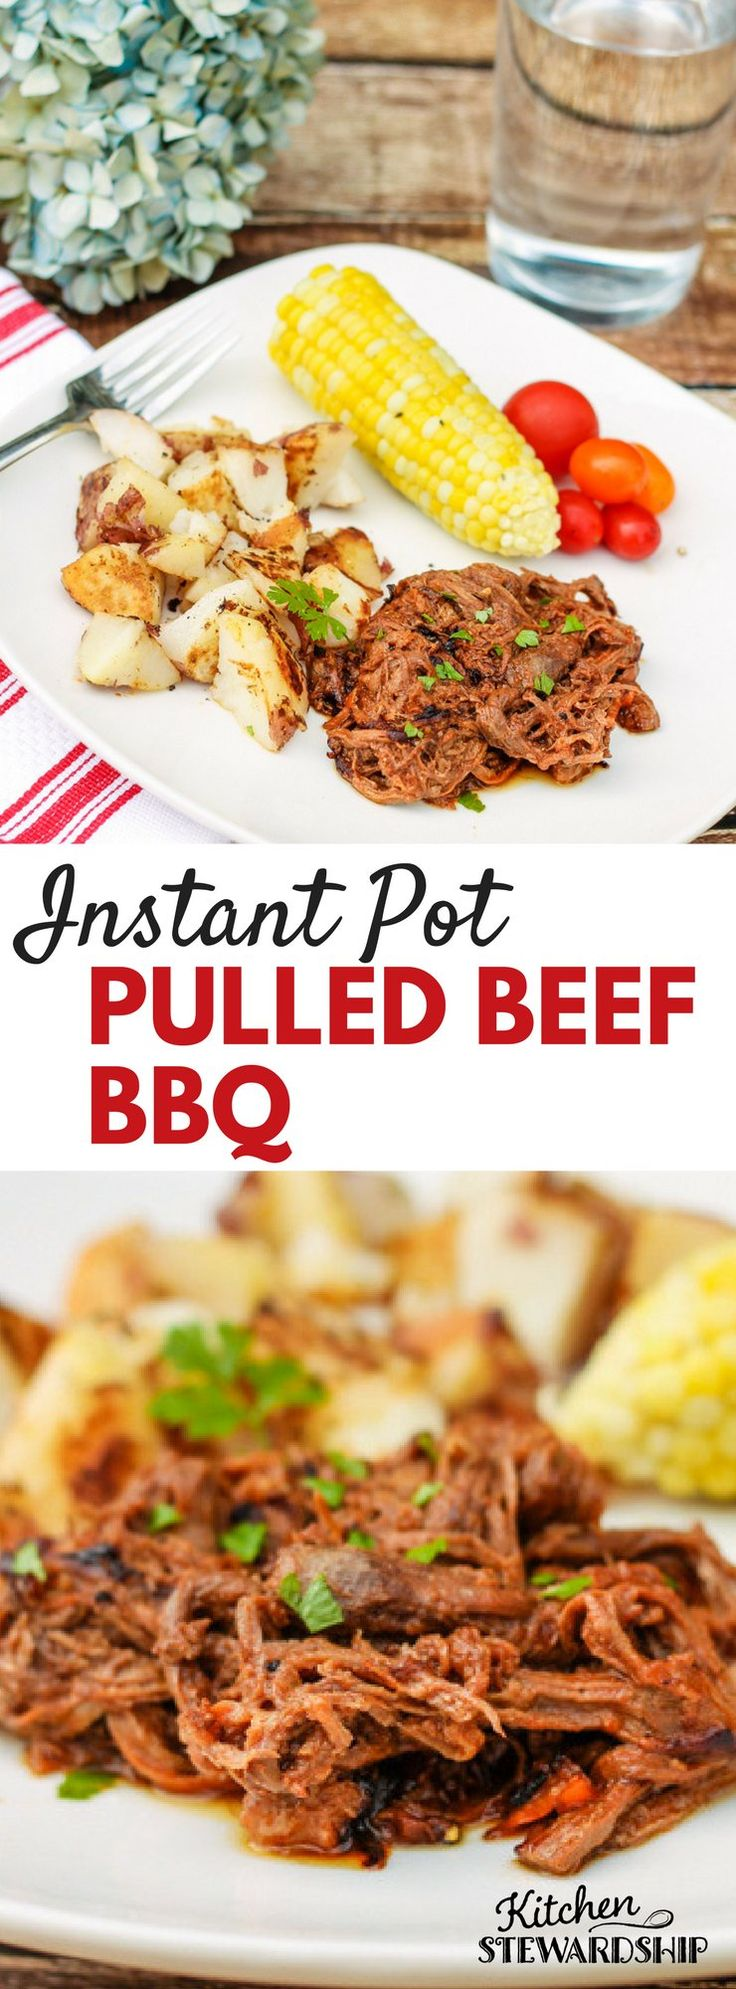 Instant Pot Pulled Beef Barbecue using a 3-pound chuck roast - fast kid-friendly dinner from an old slow cooker recipe